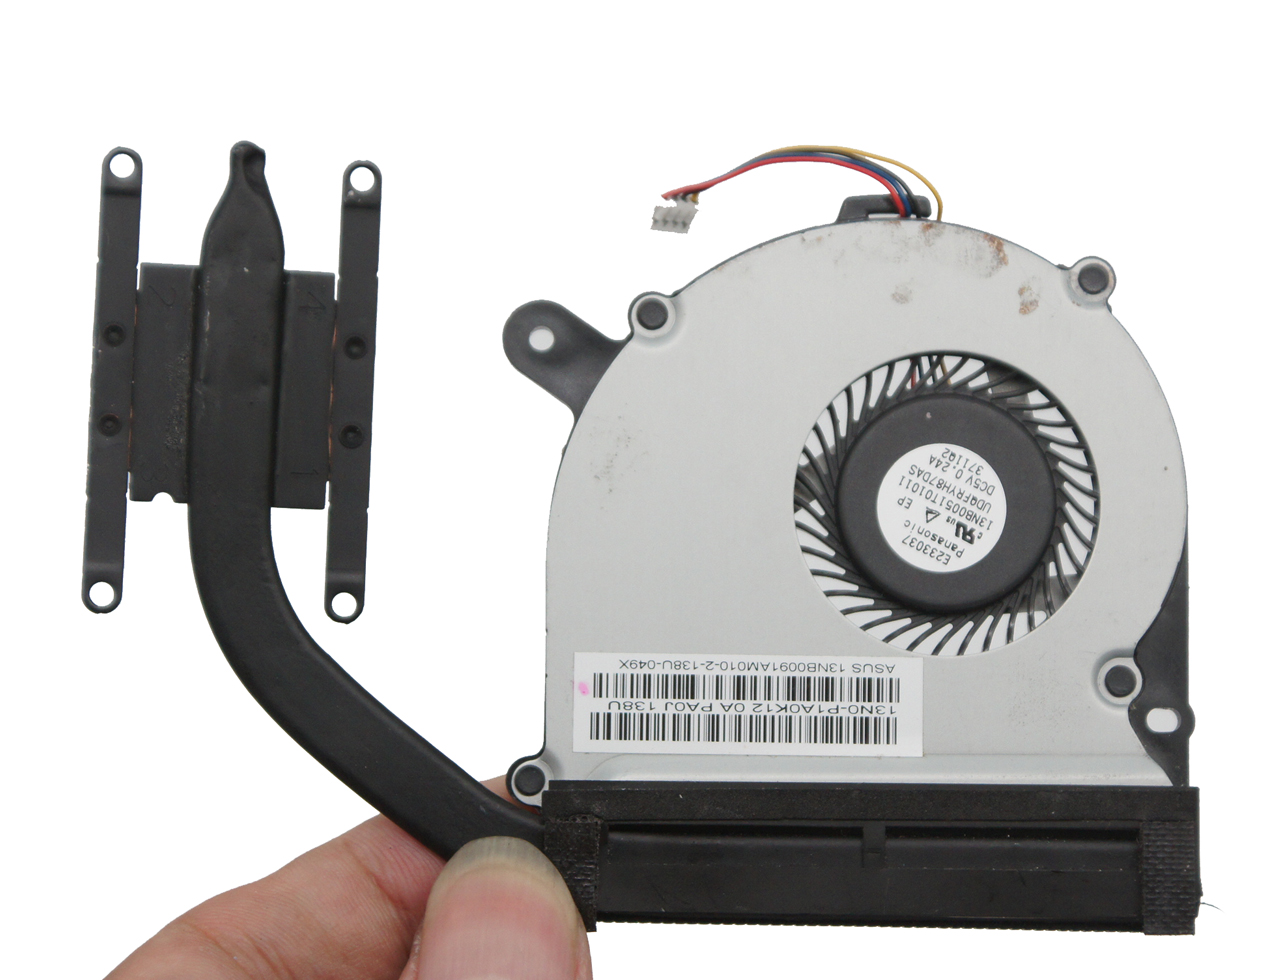 新到65pcs 13N0-P1A0K1213N0-P1A0K11 UDQFRYH87DAS heatsink and fan For ASUS 散热器 模组 风扇